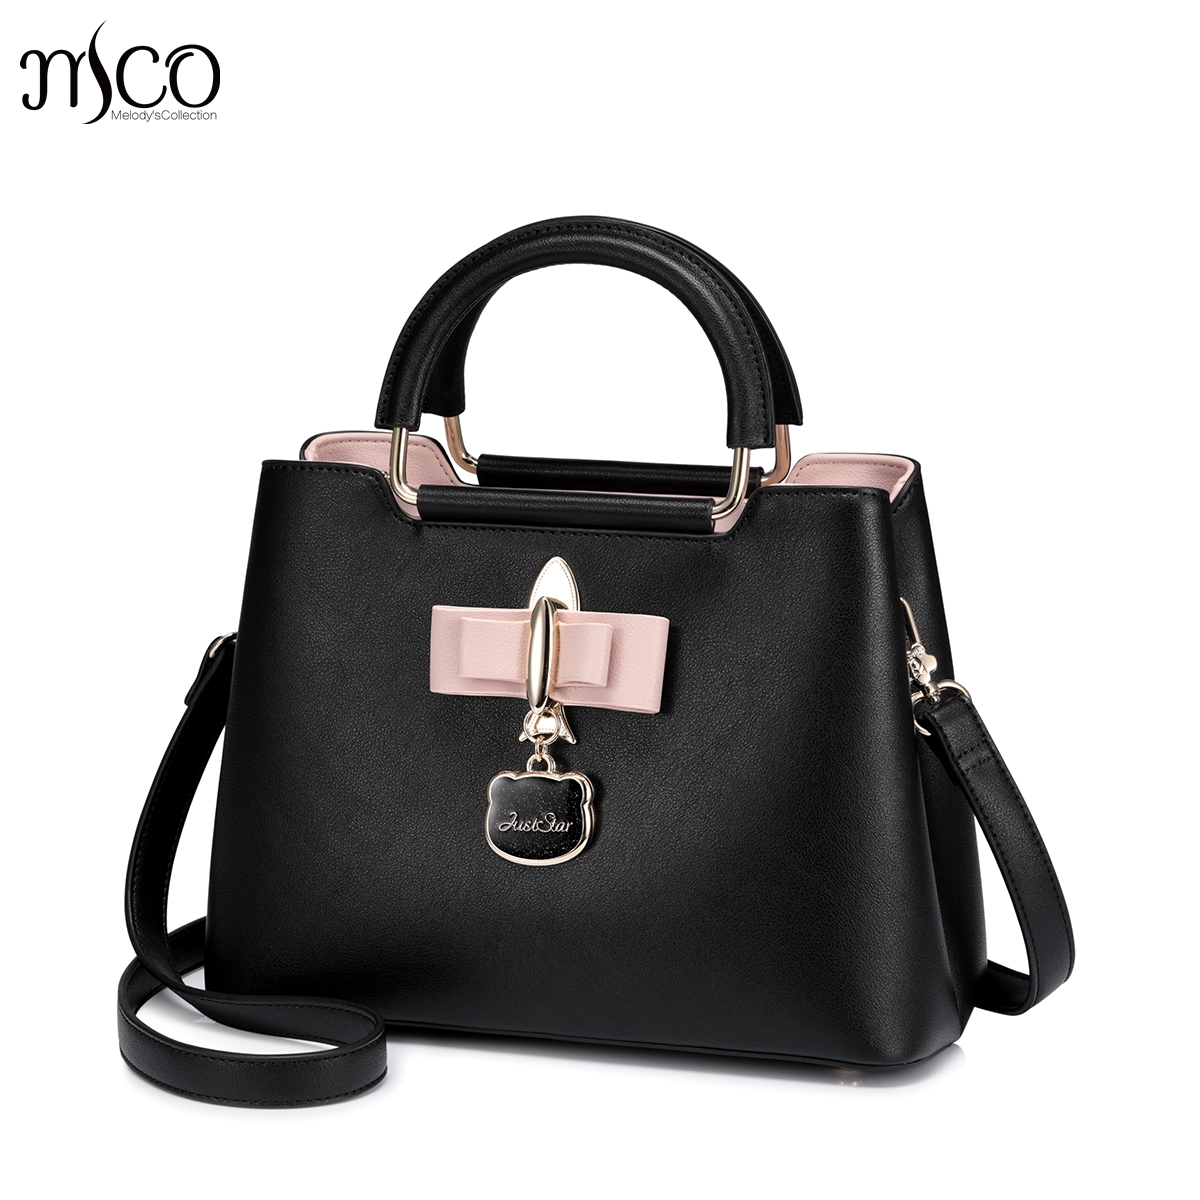 Just star designer brand luxury Pink Bow handbags women Shoulder bags sac a main femme clutch crossbody a bag bolsas feminina fake designer bags v women s luxury leather clutch bag ladies handbags brand women messenger bags sac a main femme handle